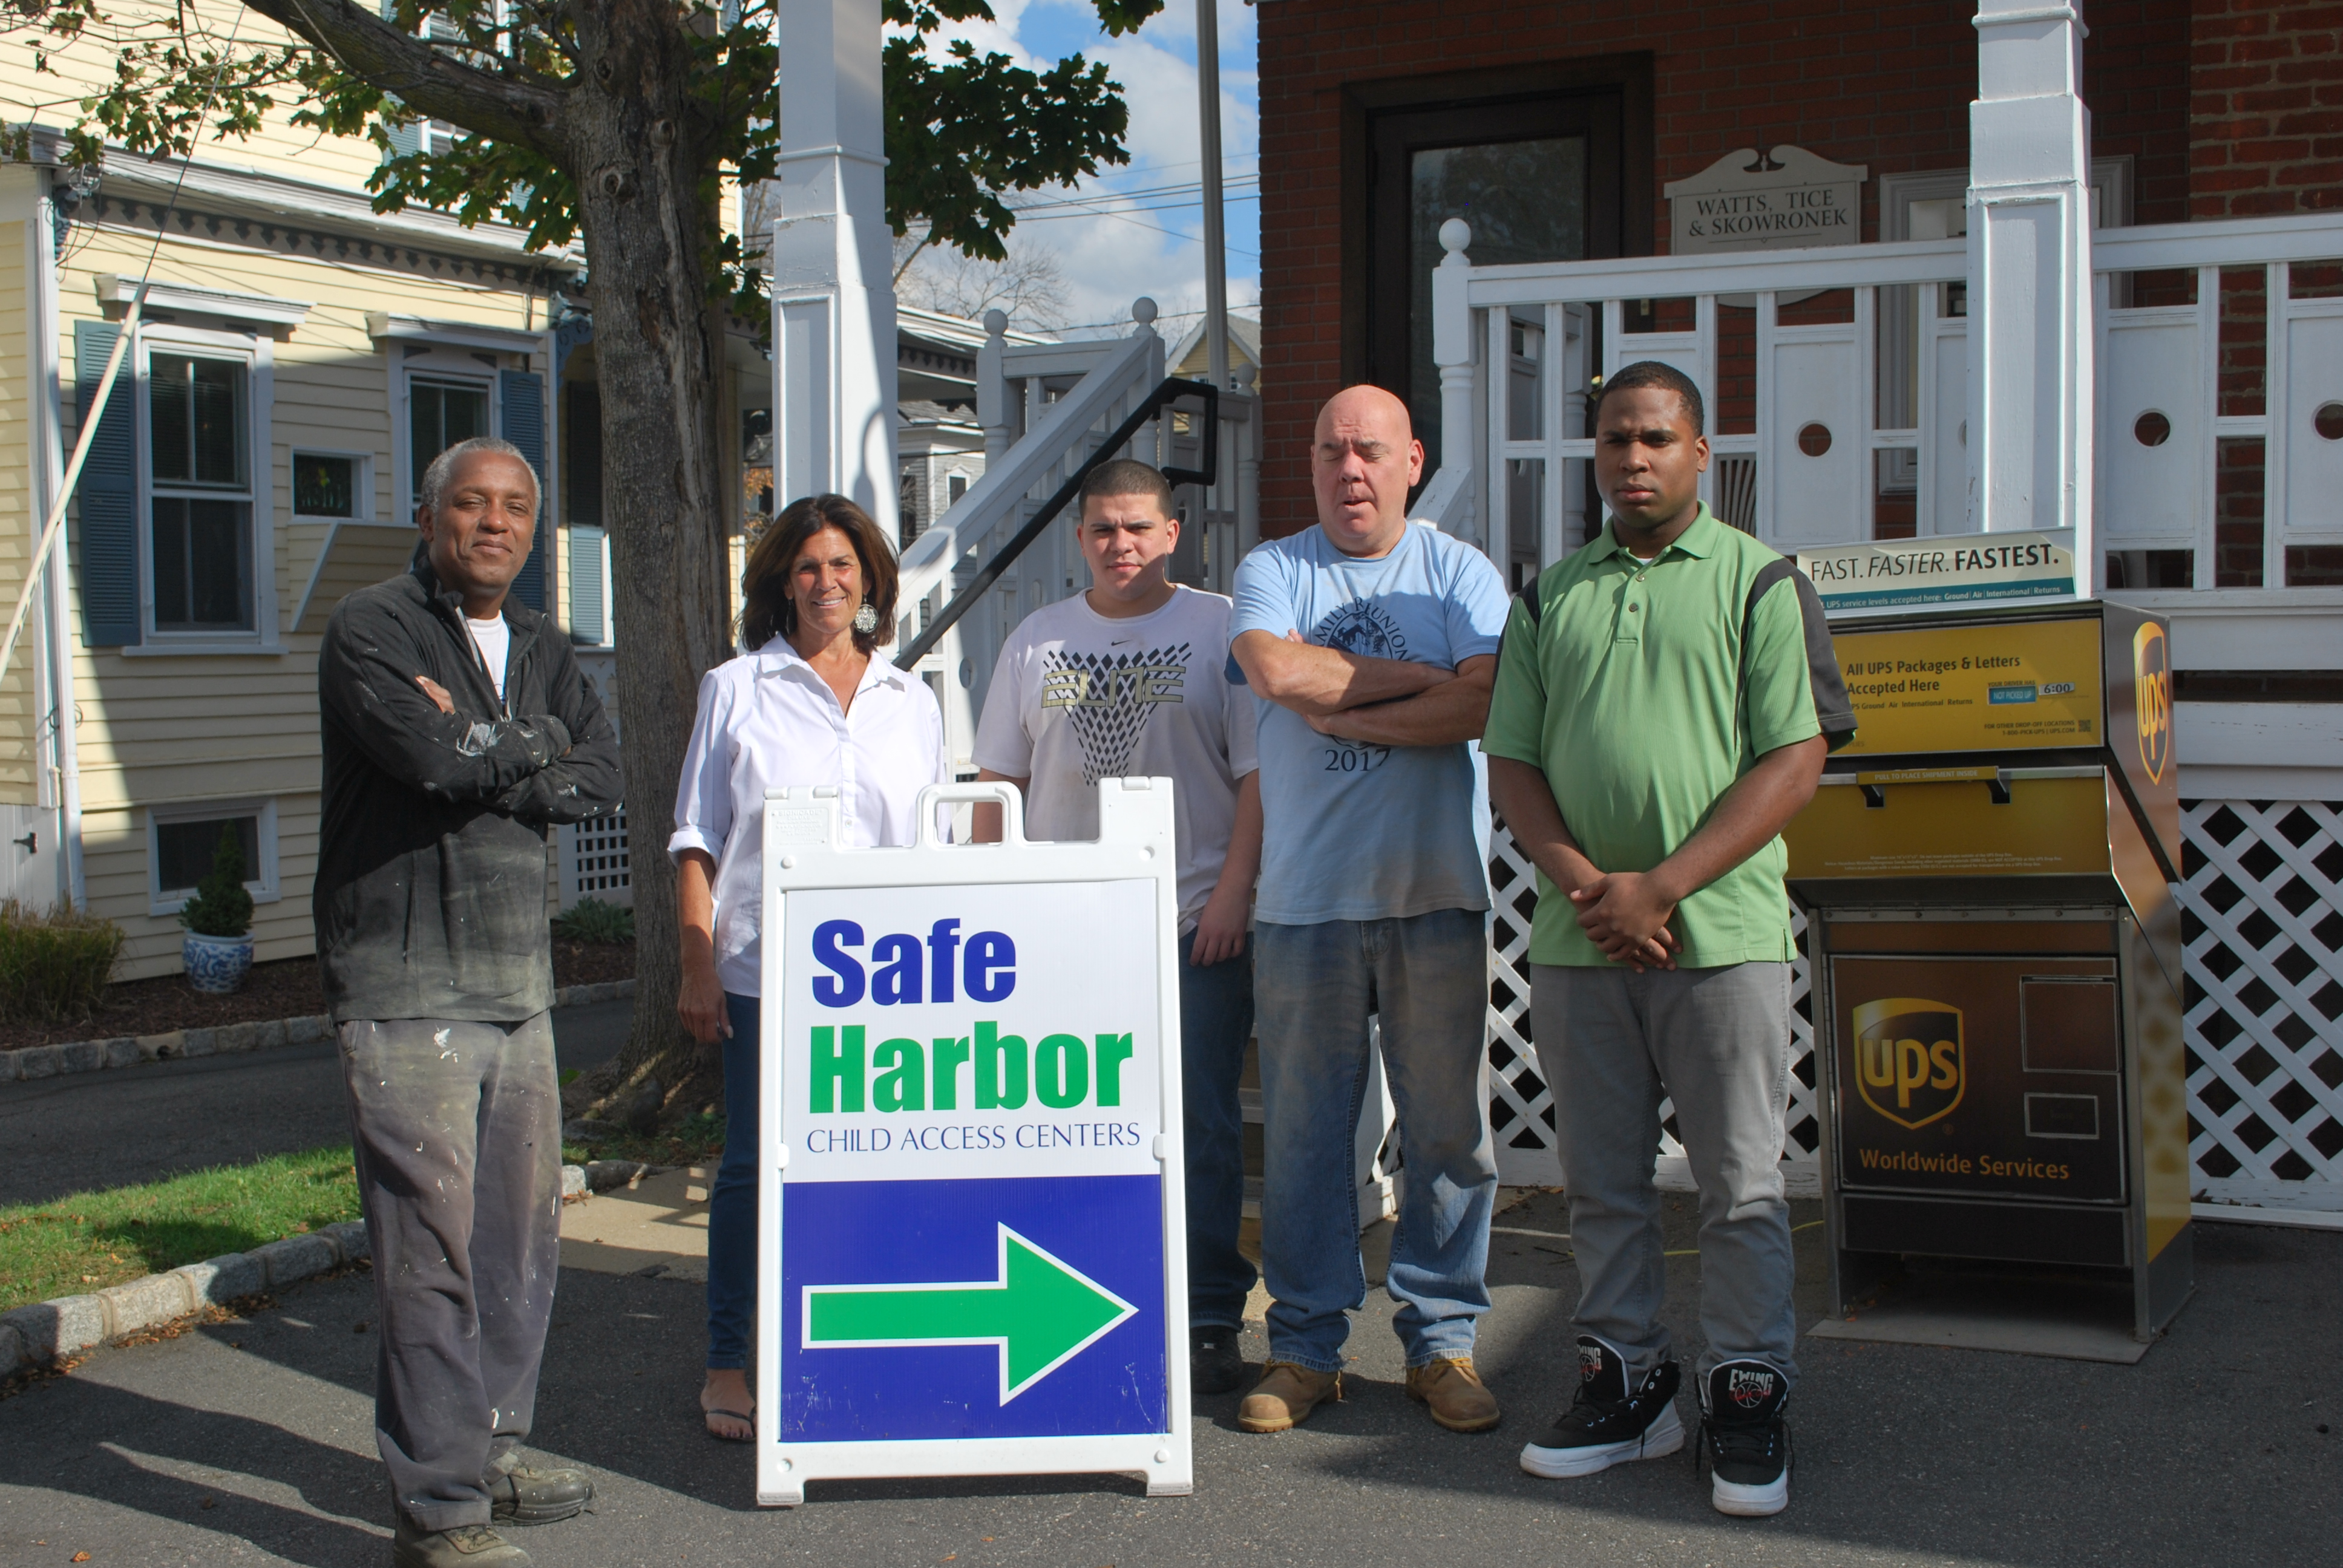 Freedom house and safe harbor